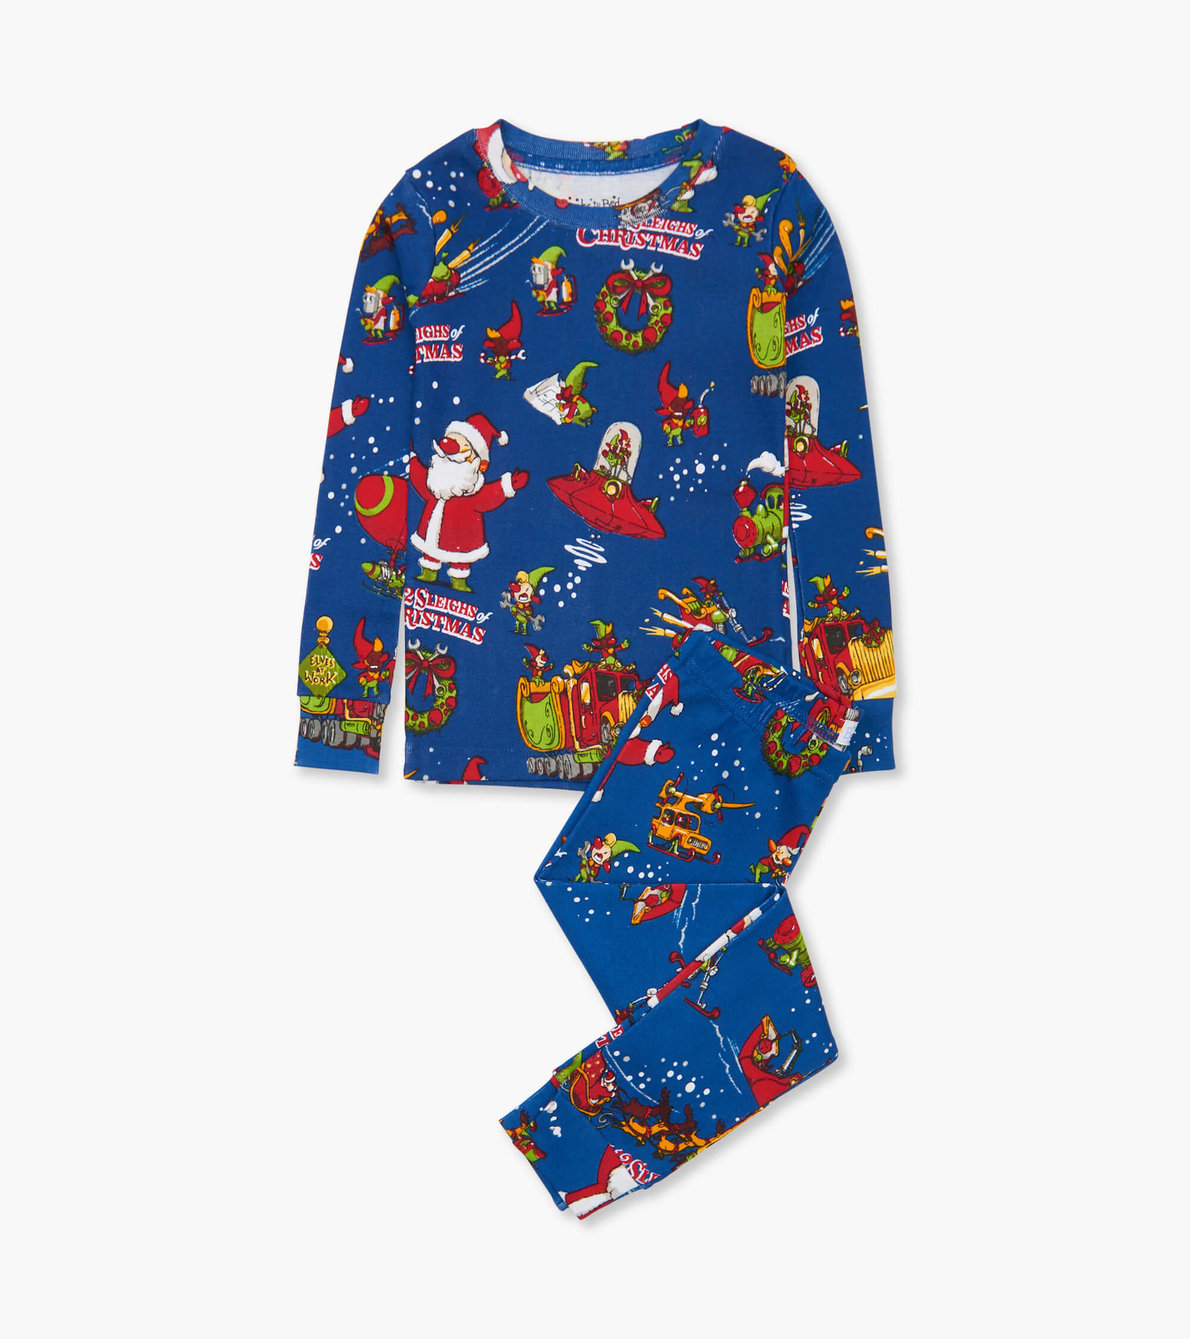 View larger image of The 12 Sleighs of Christmas Pajama Set